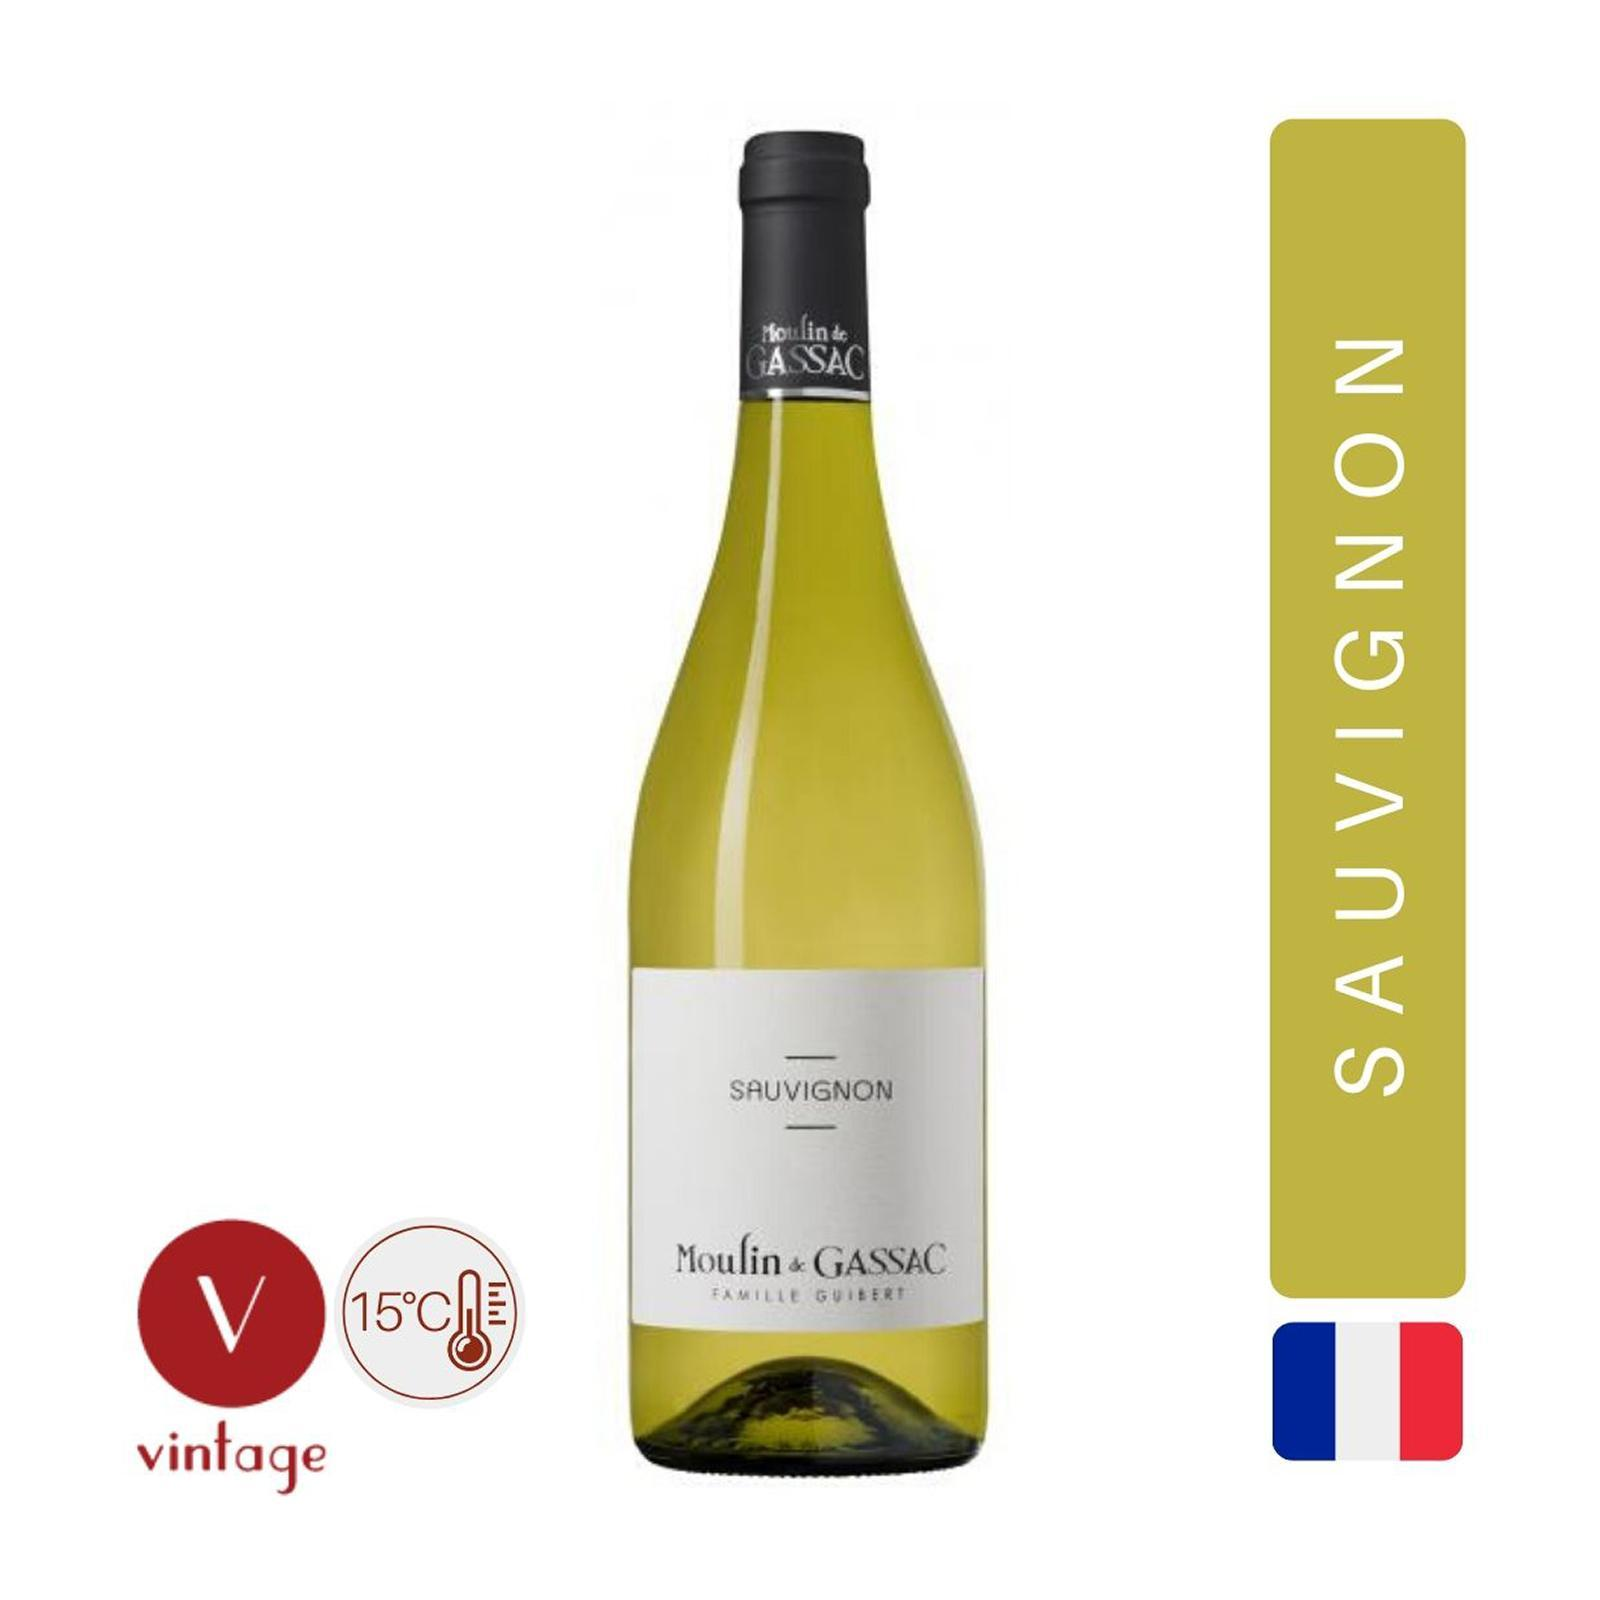 Moulin De Gassac - Sauvignon Blanc -White Wine - By The Vintage Wine Club